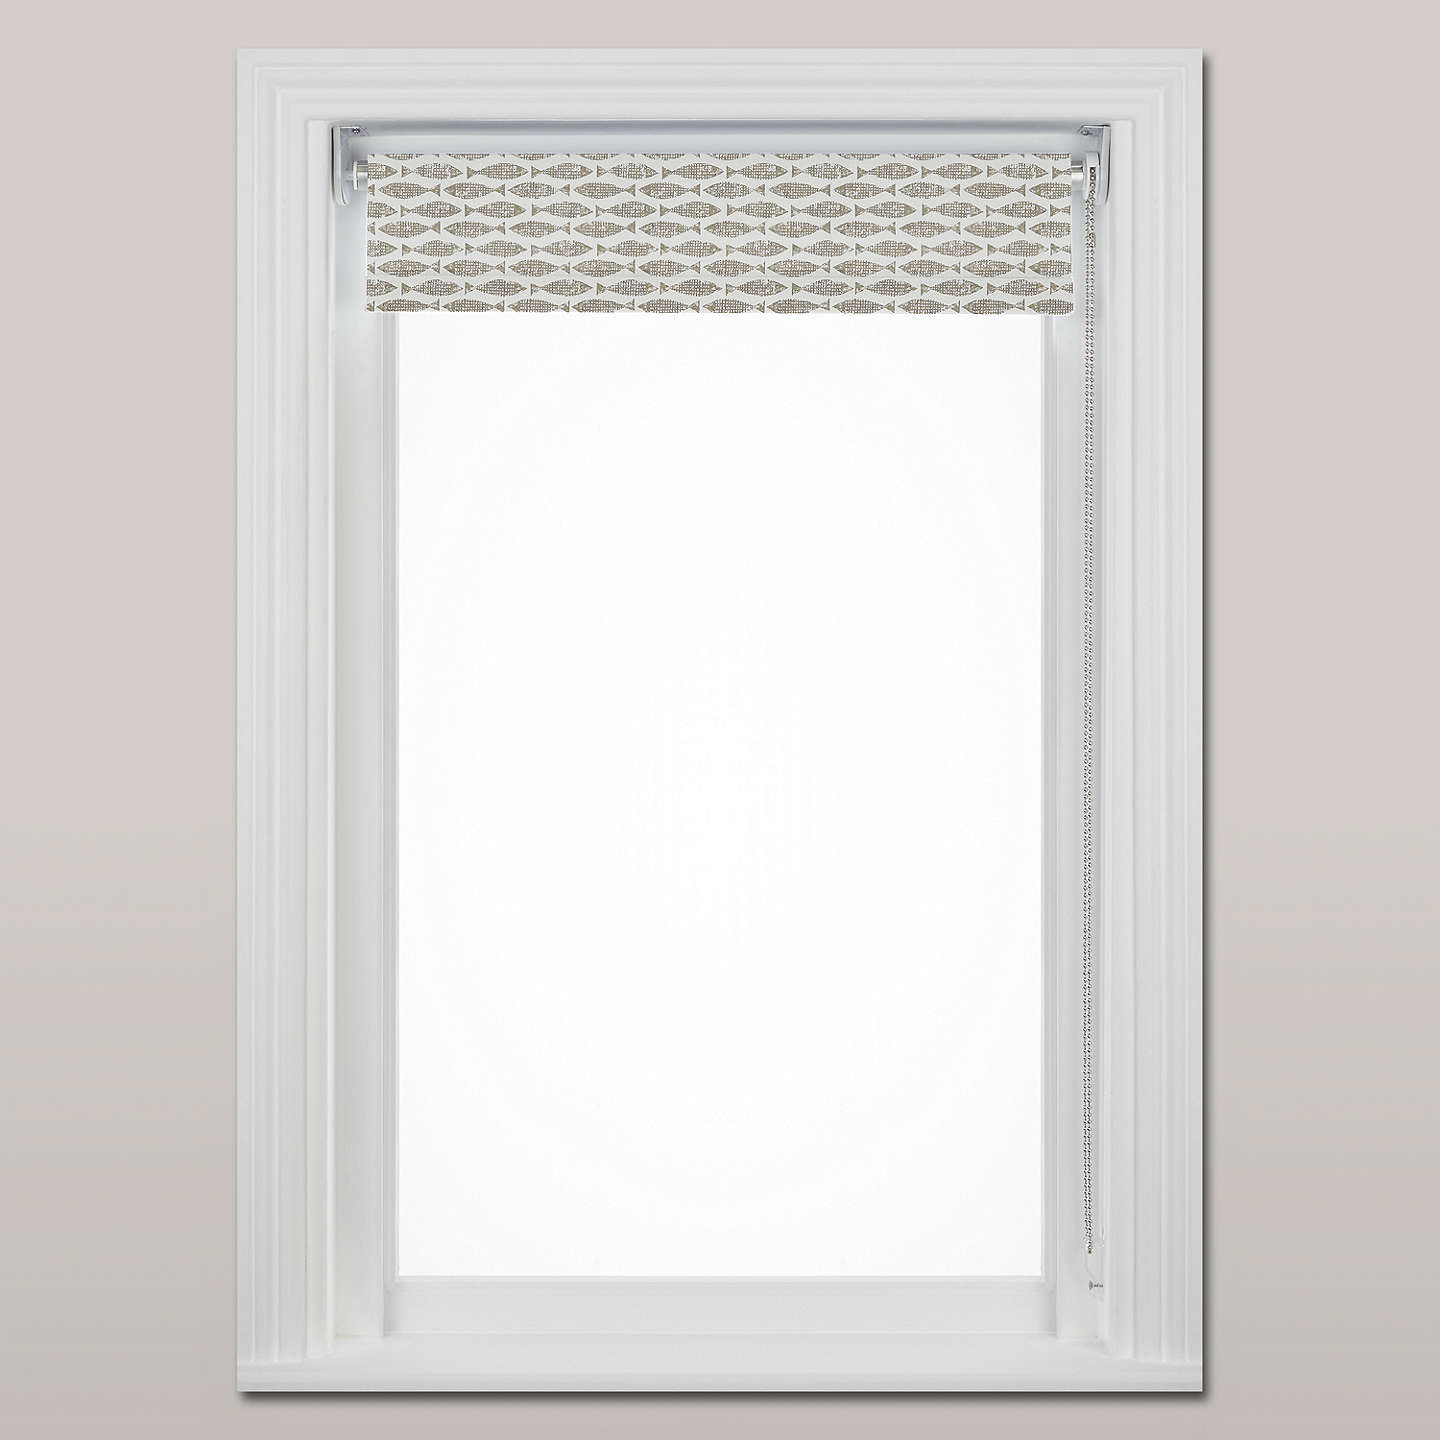 BuyScion Samaki Made to Measure Daylight Roller Blind, Grey Online at johnlewis.com